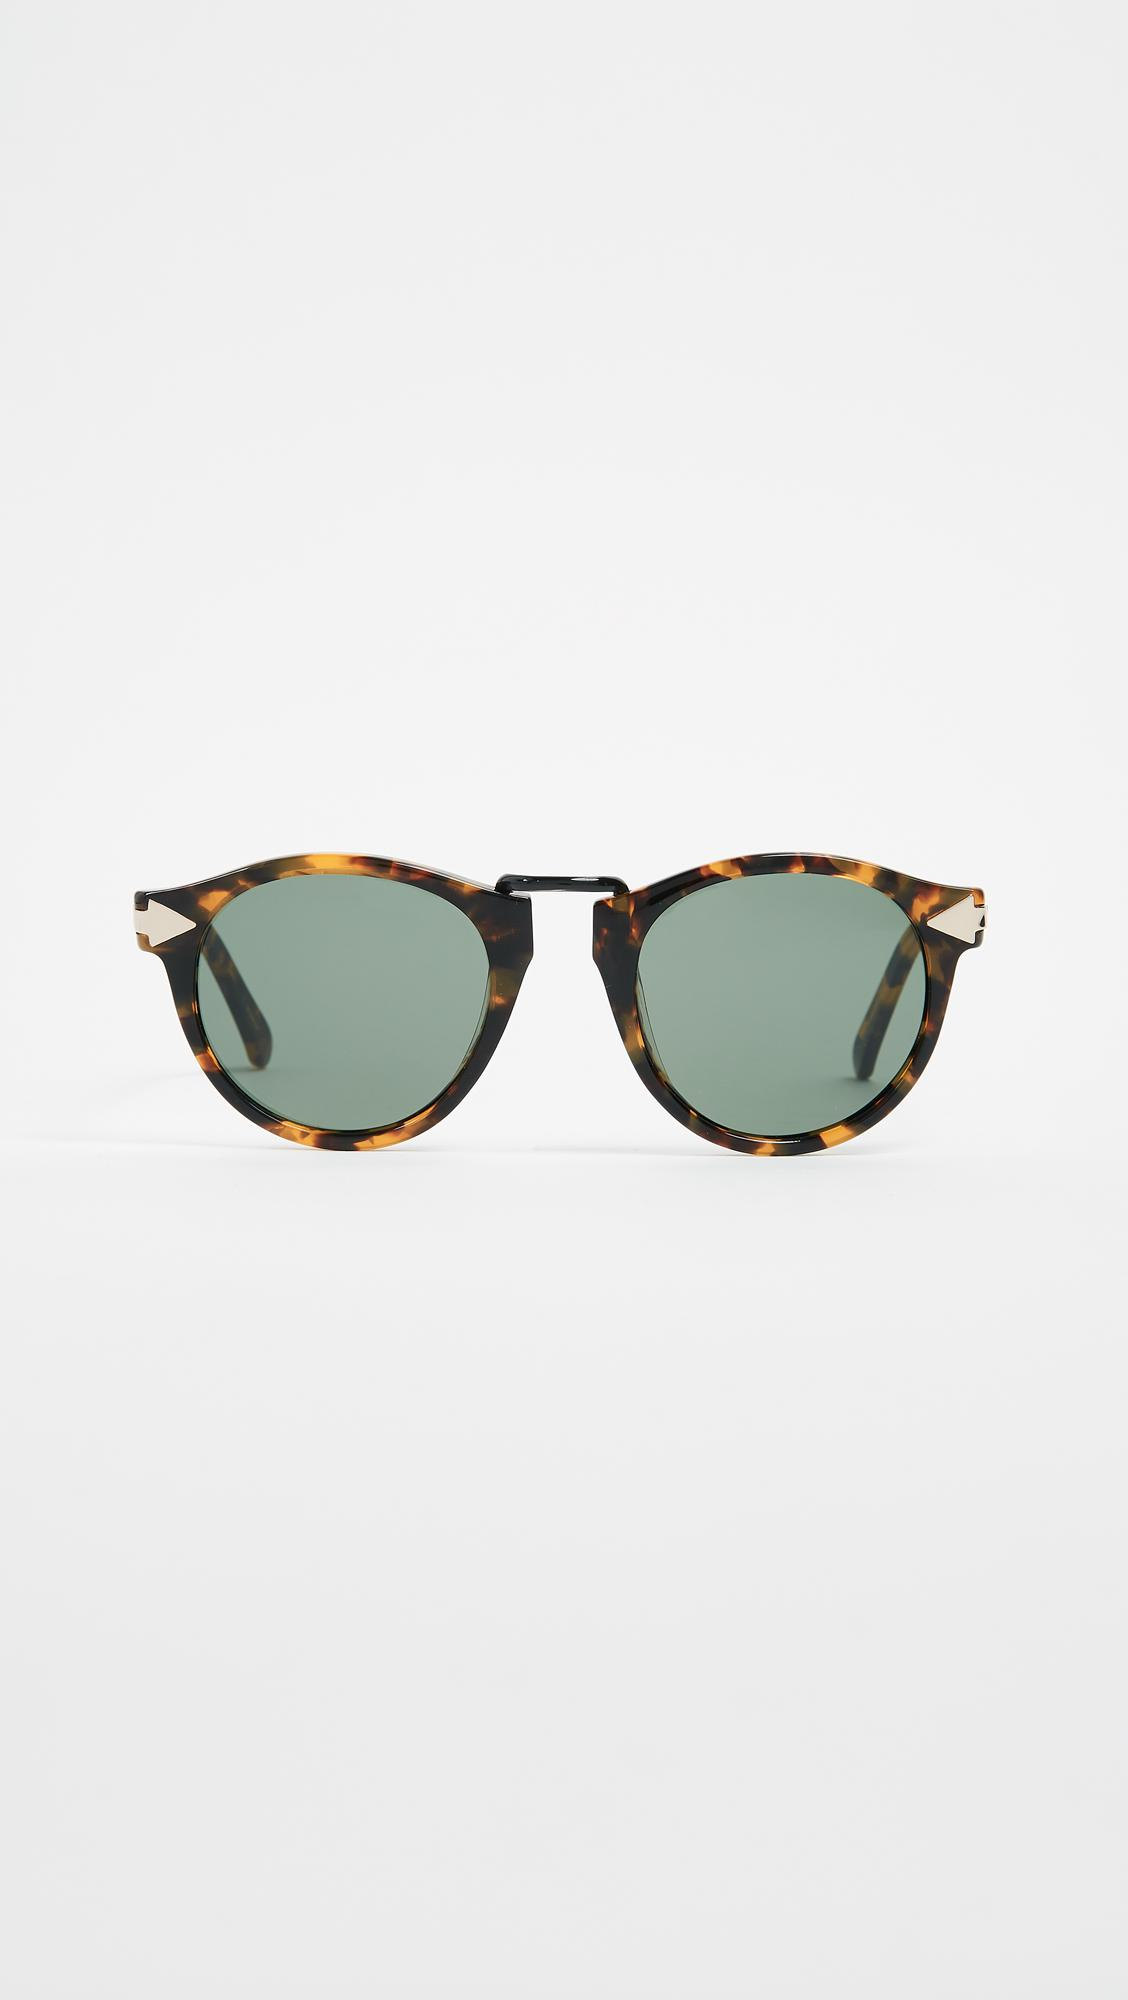 Womens Shipwrecks Sunglasses Karen Walker eXaLrOa4t0